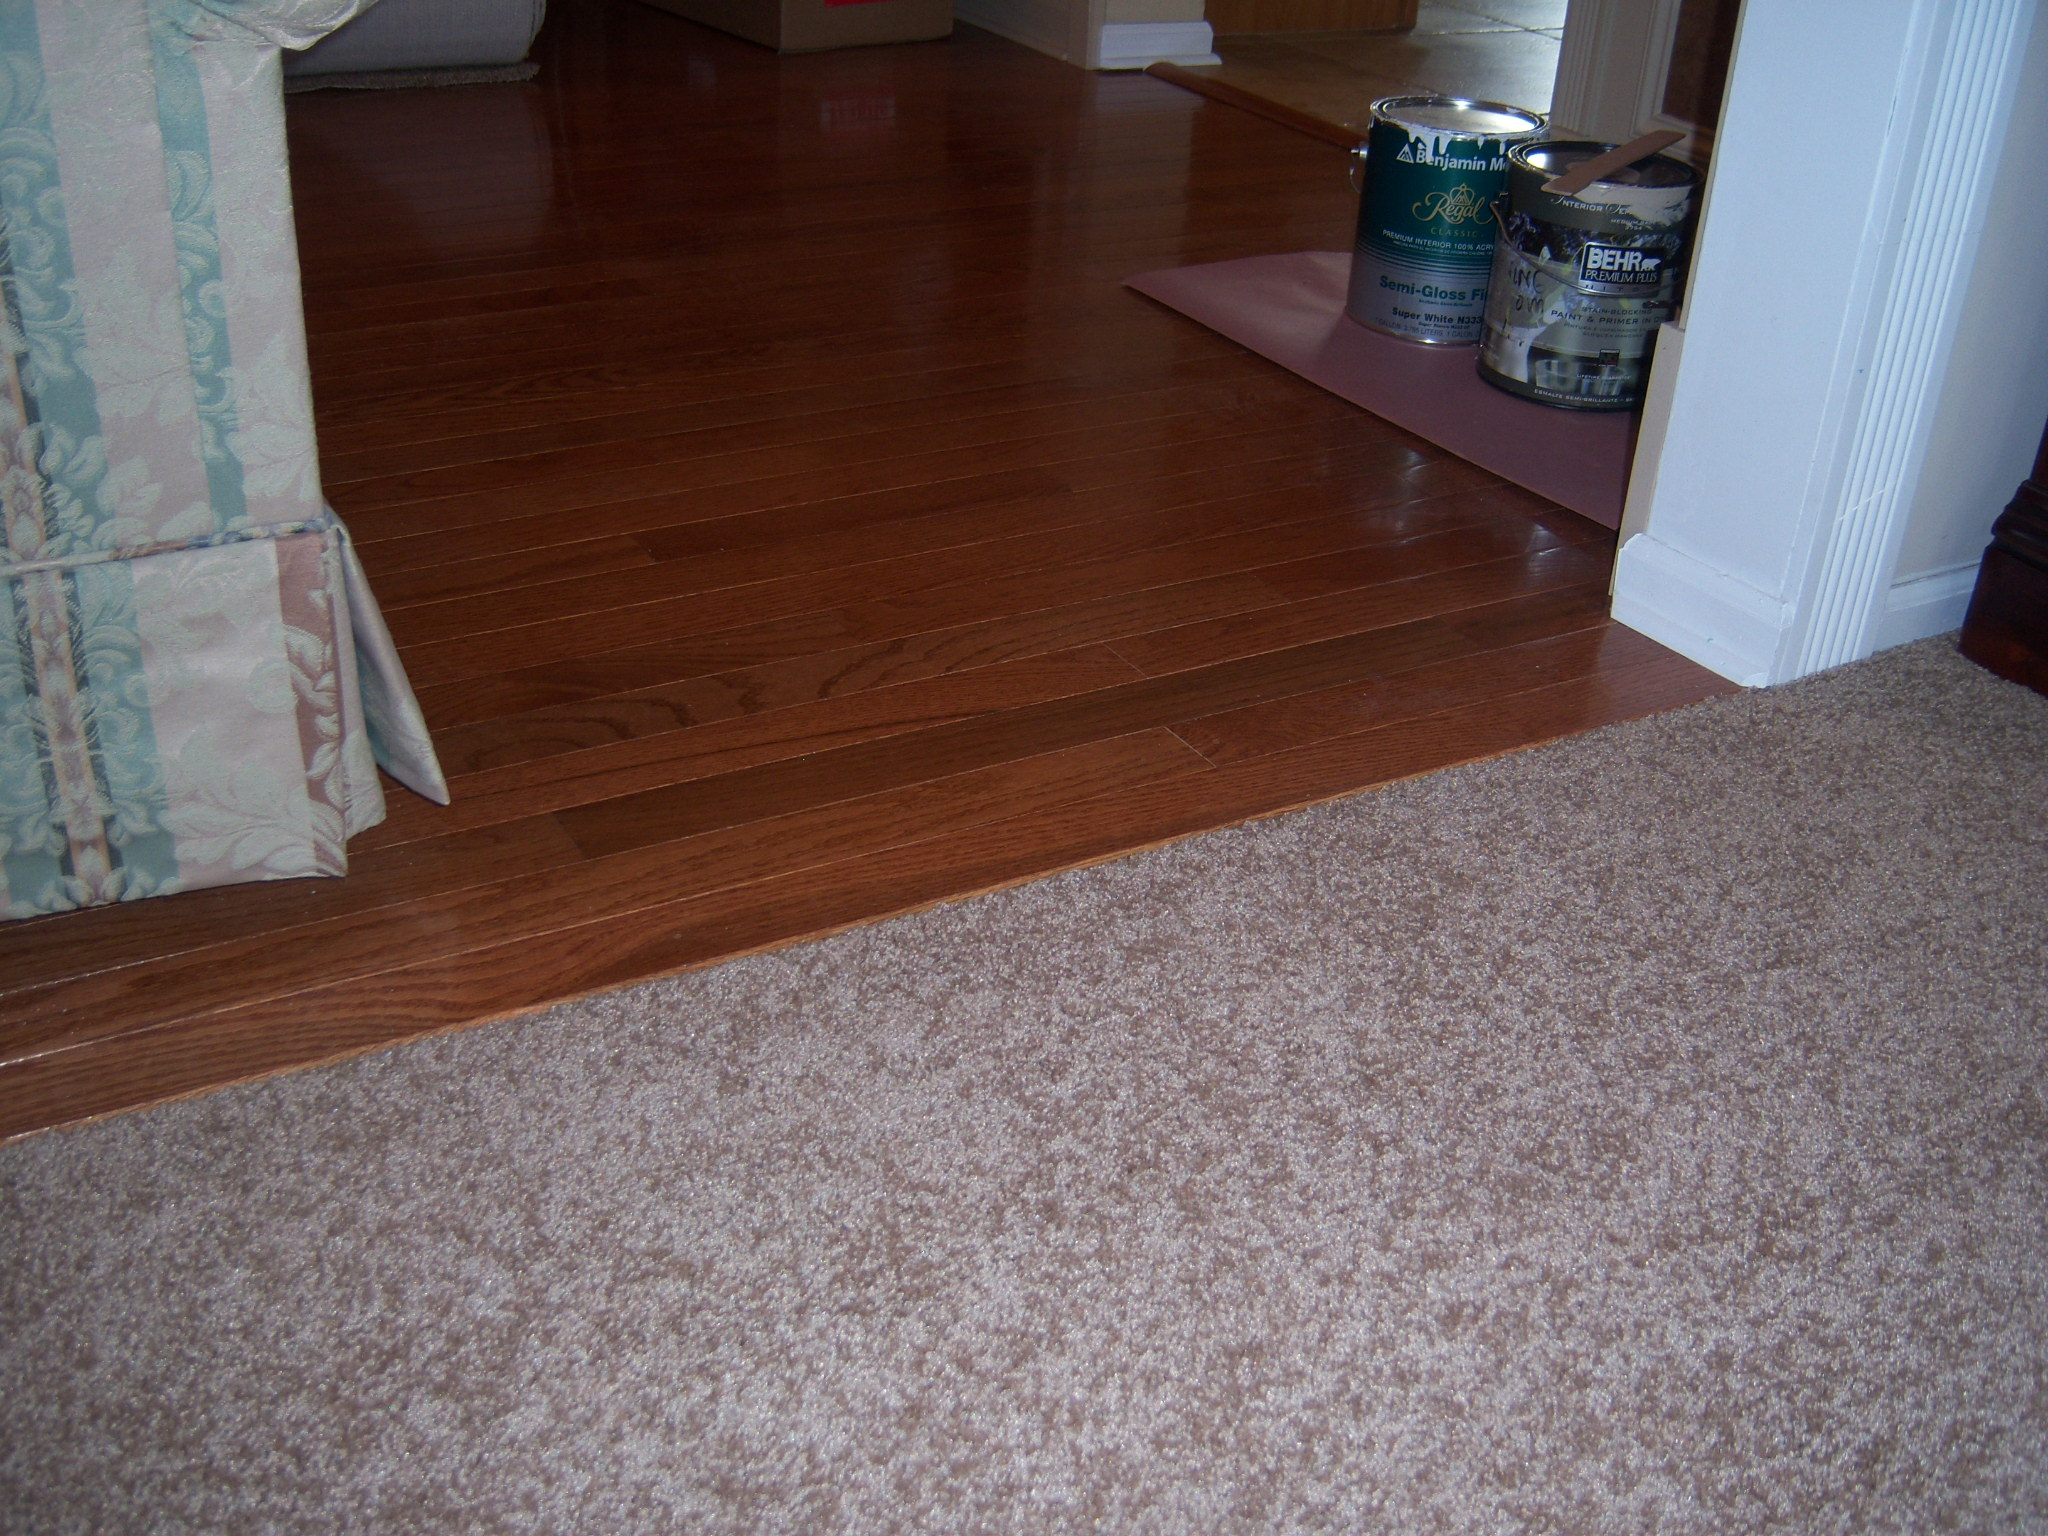 Hardwood floor installation and trim work all about the house custom carpet to hardwood transition dailygadgetfo Choice Image